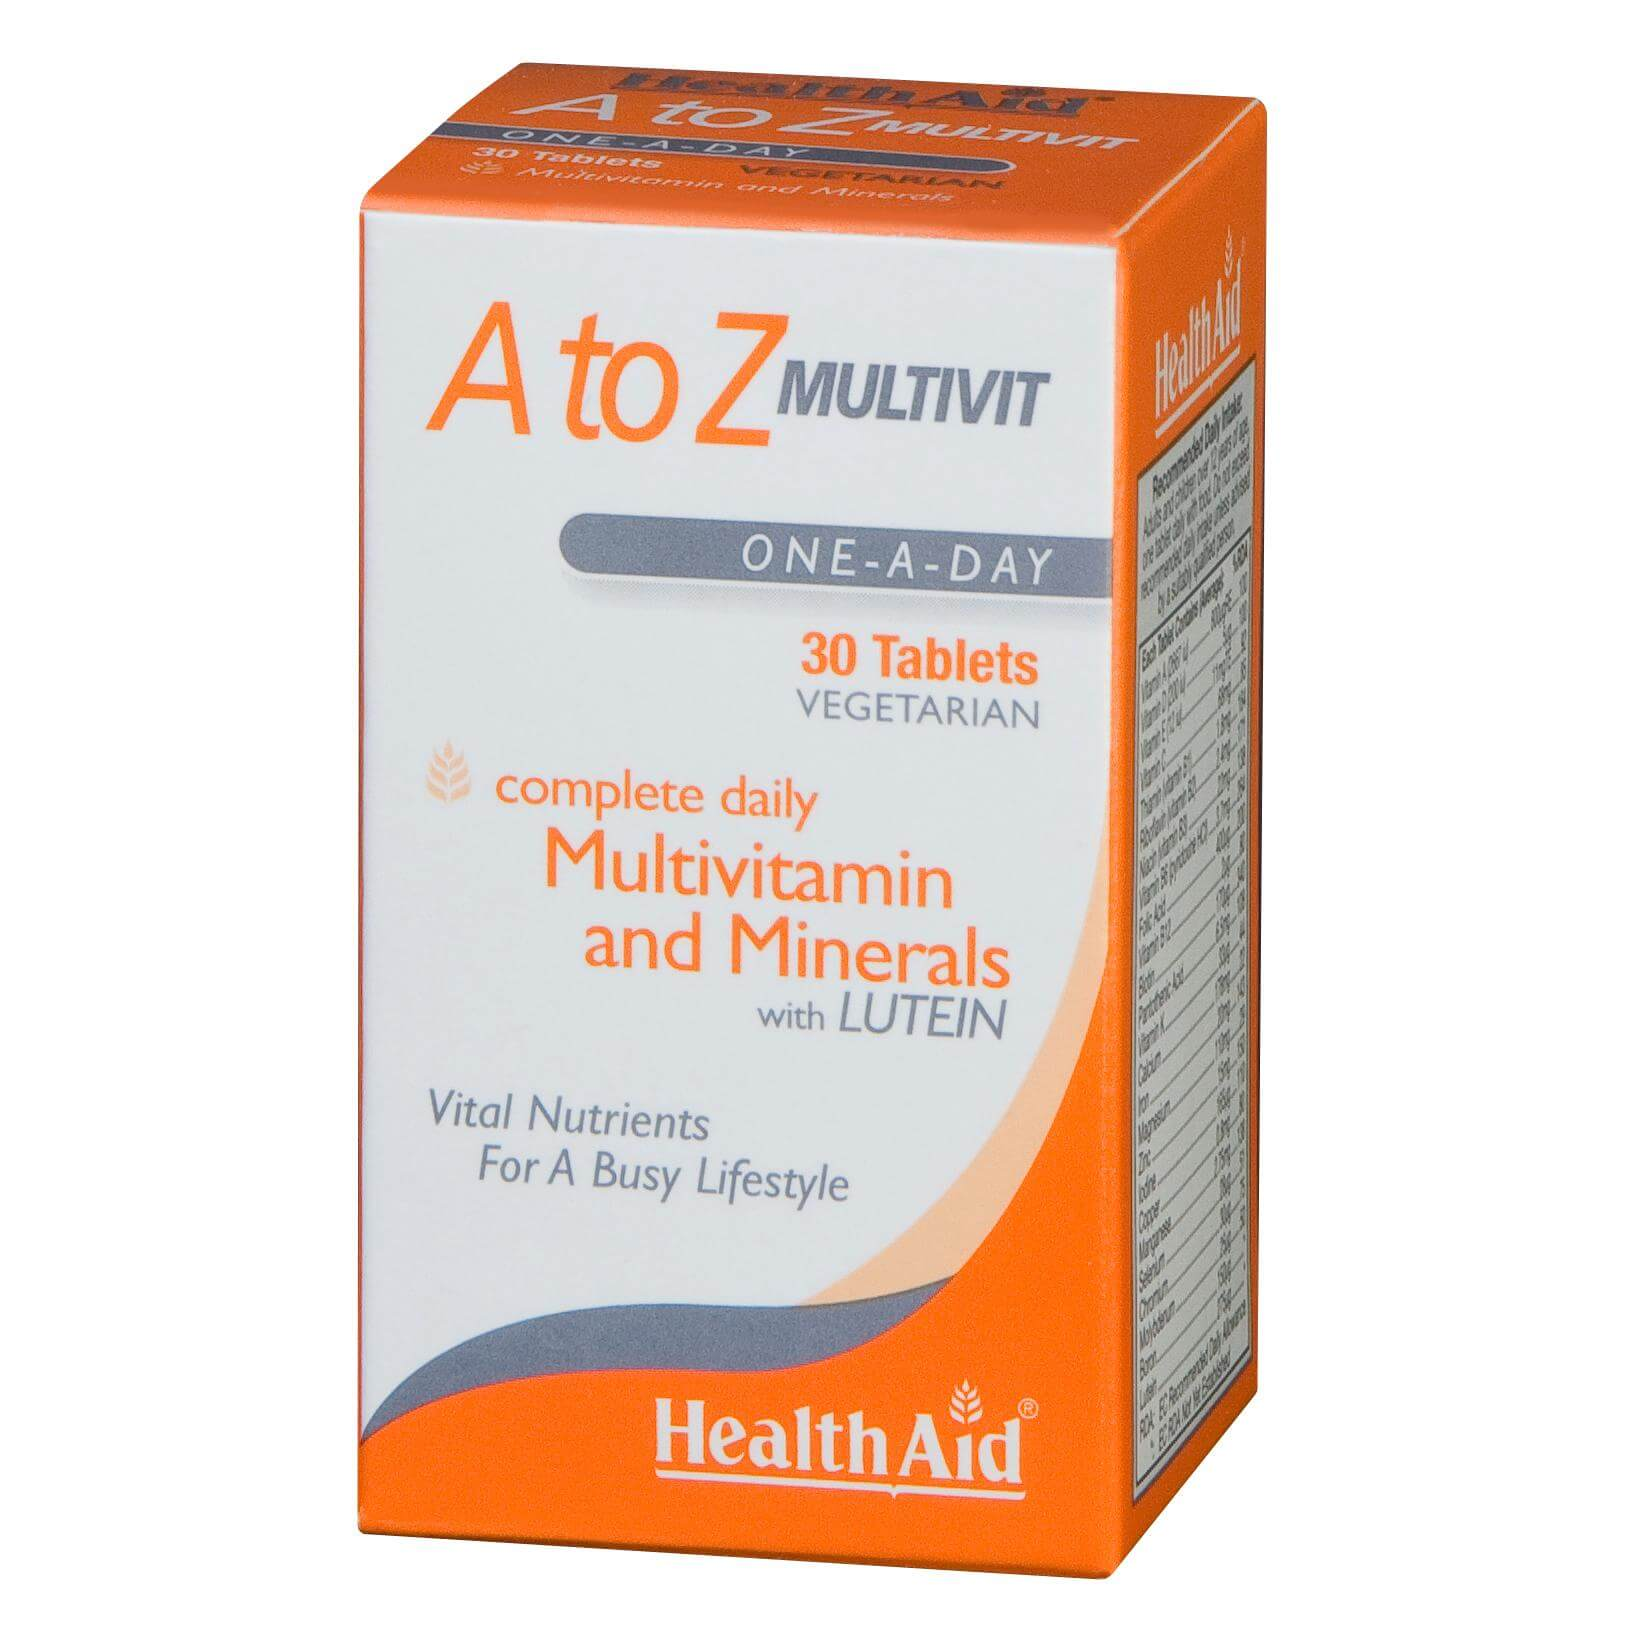 Health Aid A To Z Multivitamin Πολυβιταμίνη 30Tabs